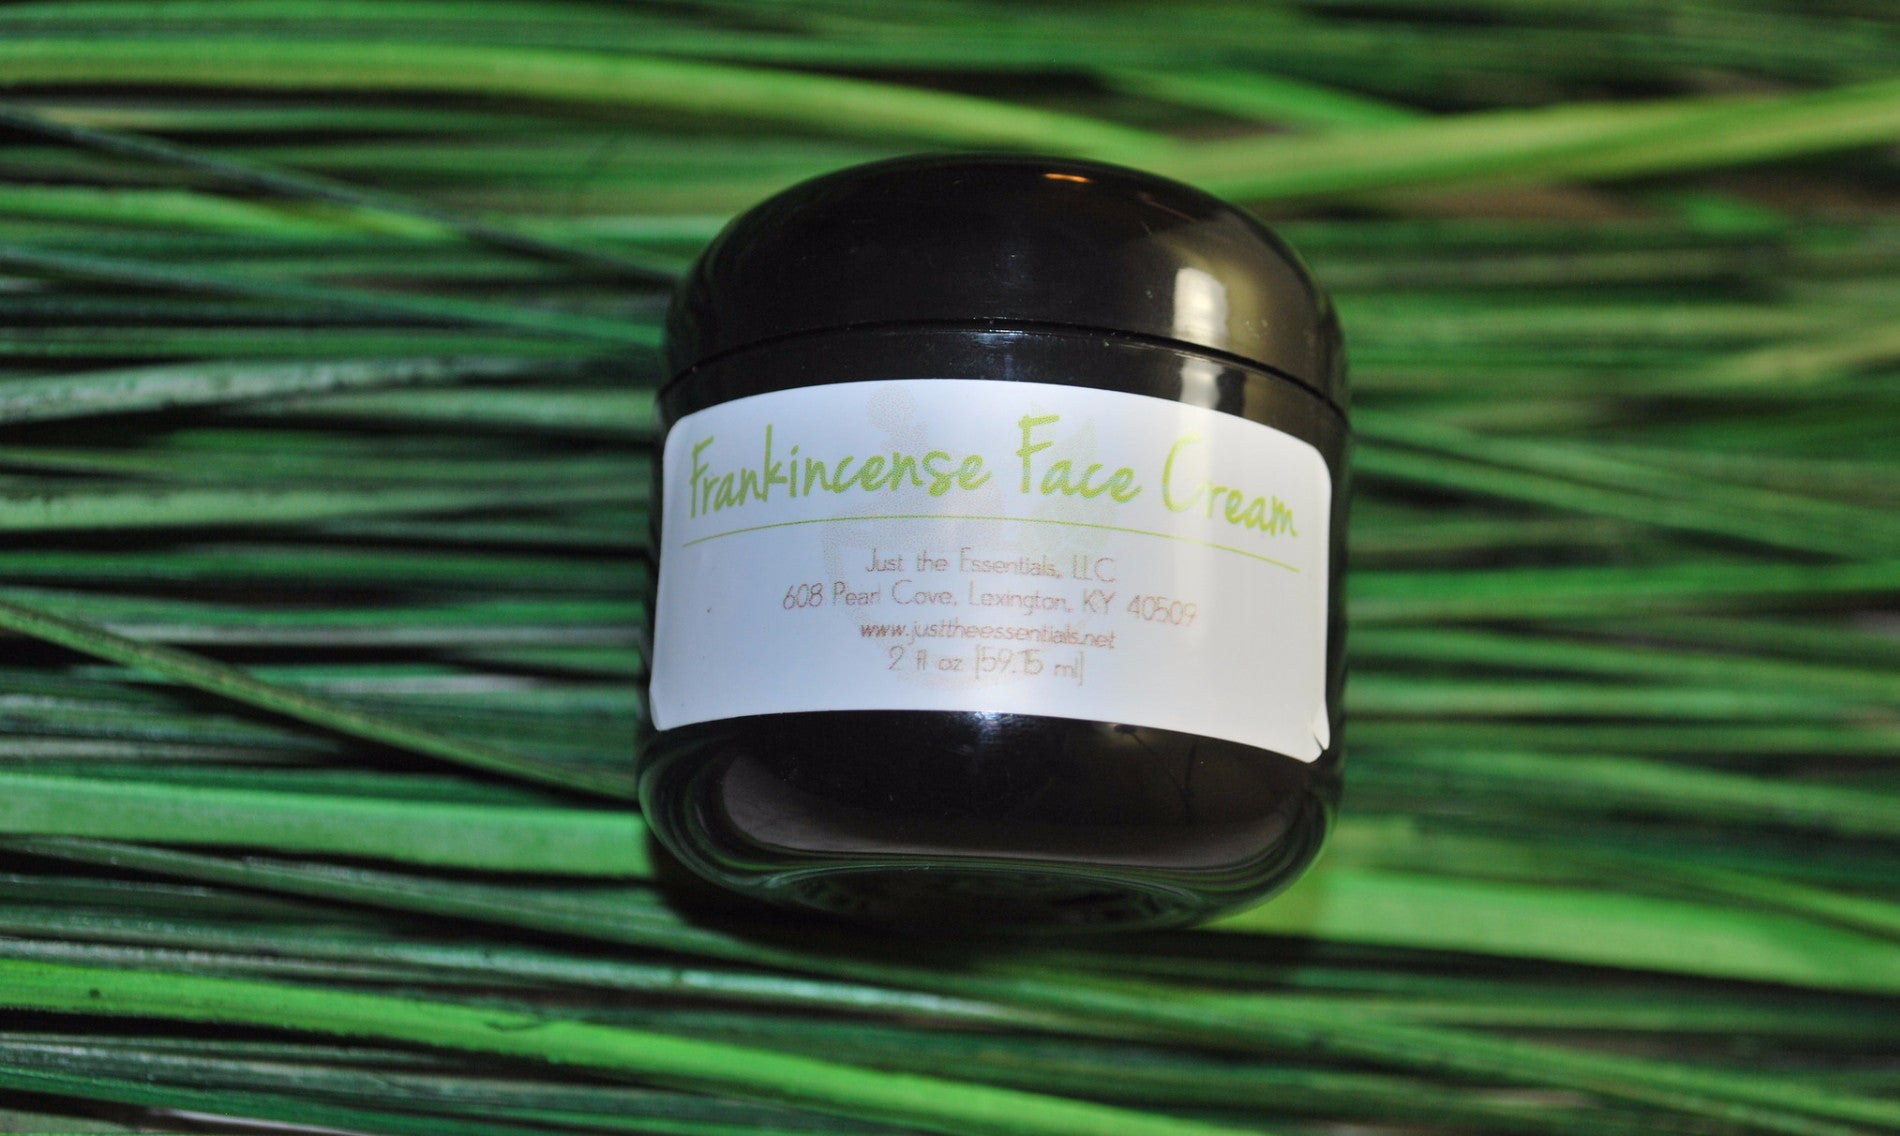 Frankincense Facial Cream